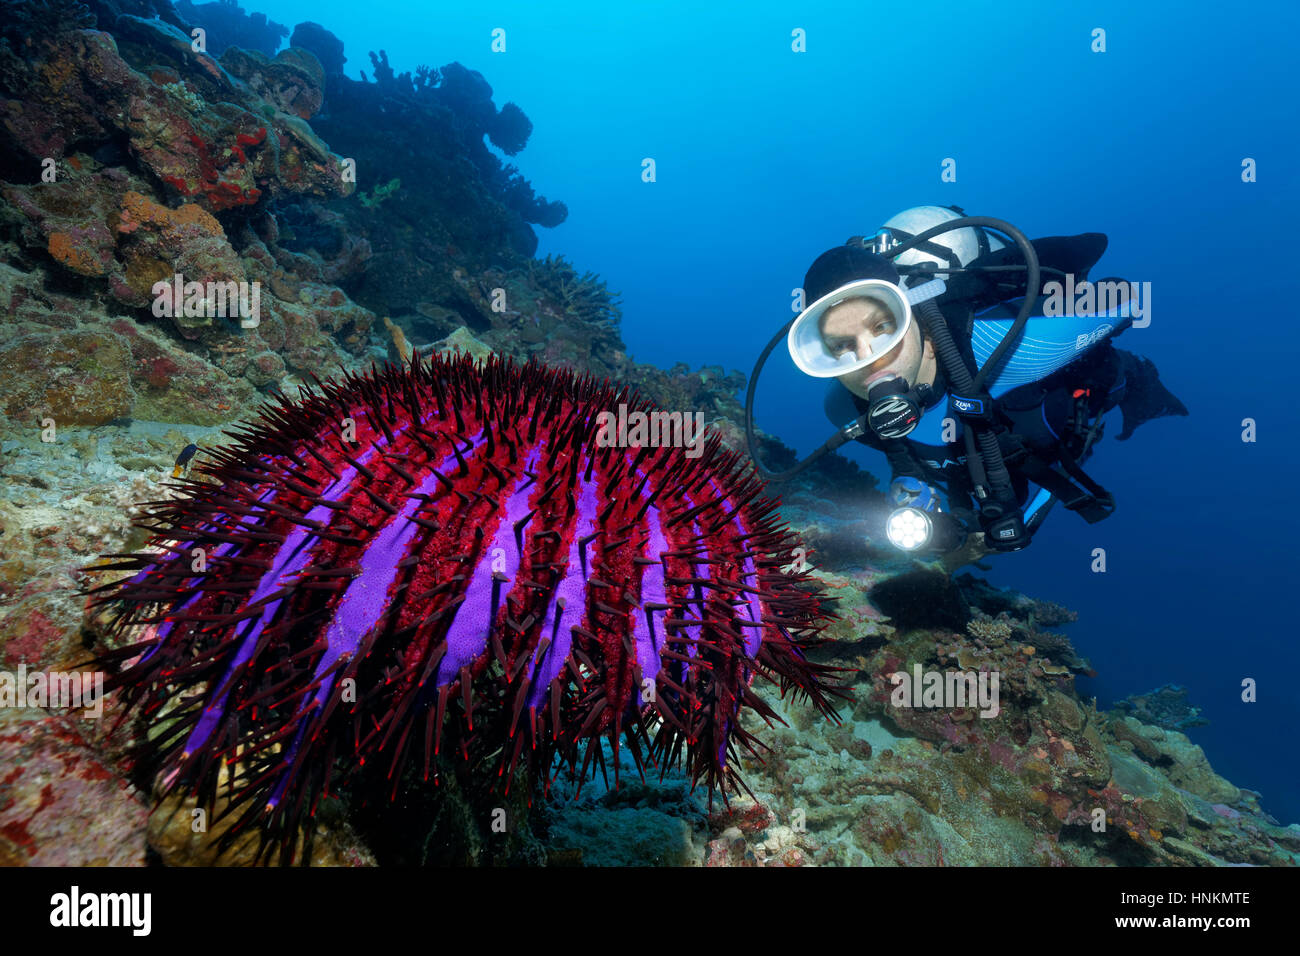 Diver, crown-of-thorns starfish (Acanthaster planci) Indian Ocean, Maldives - Stock Image